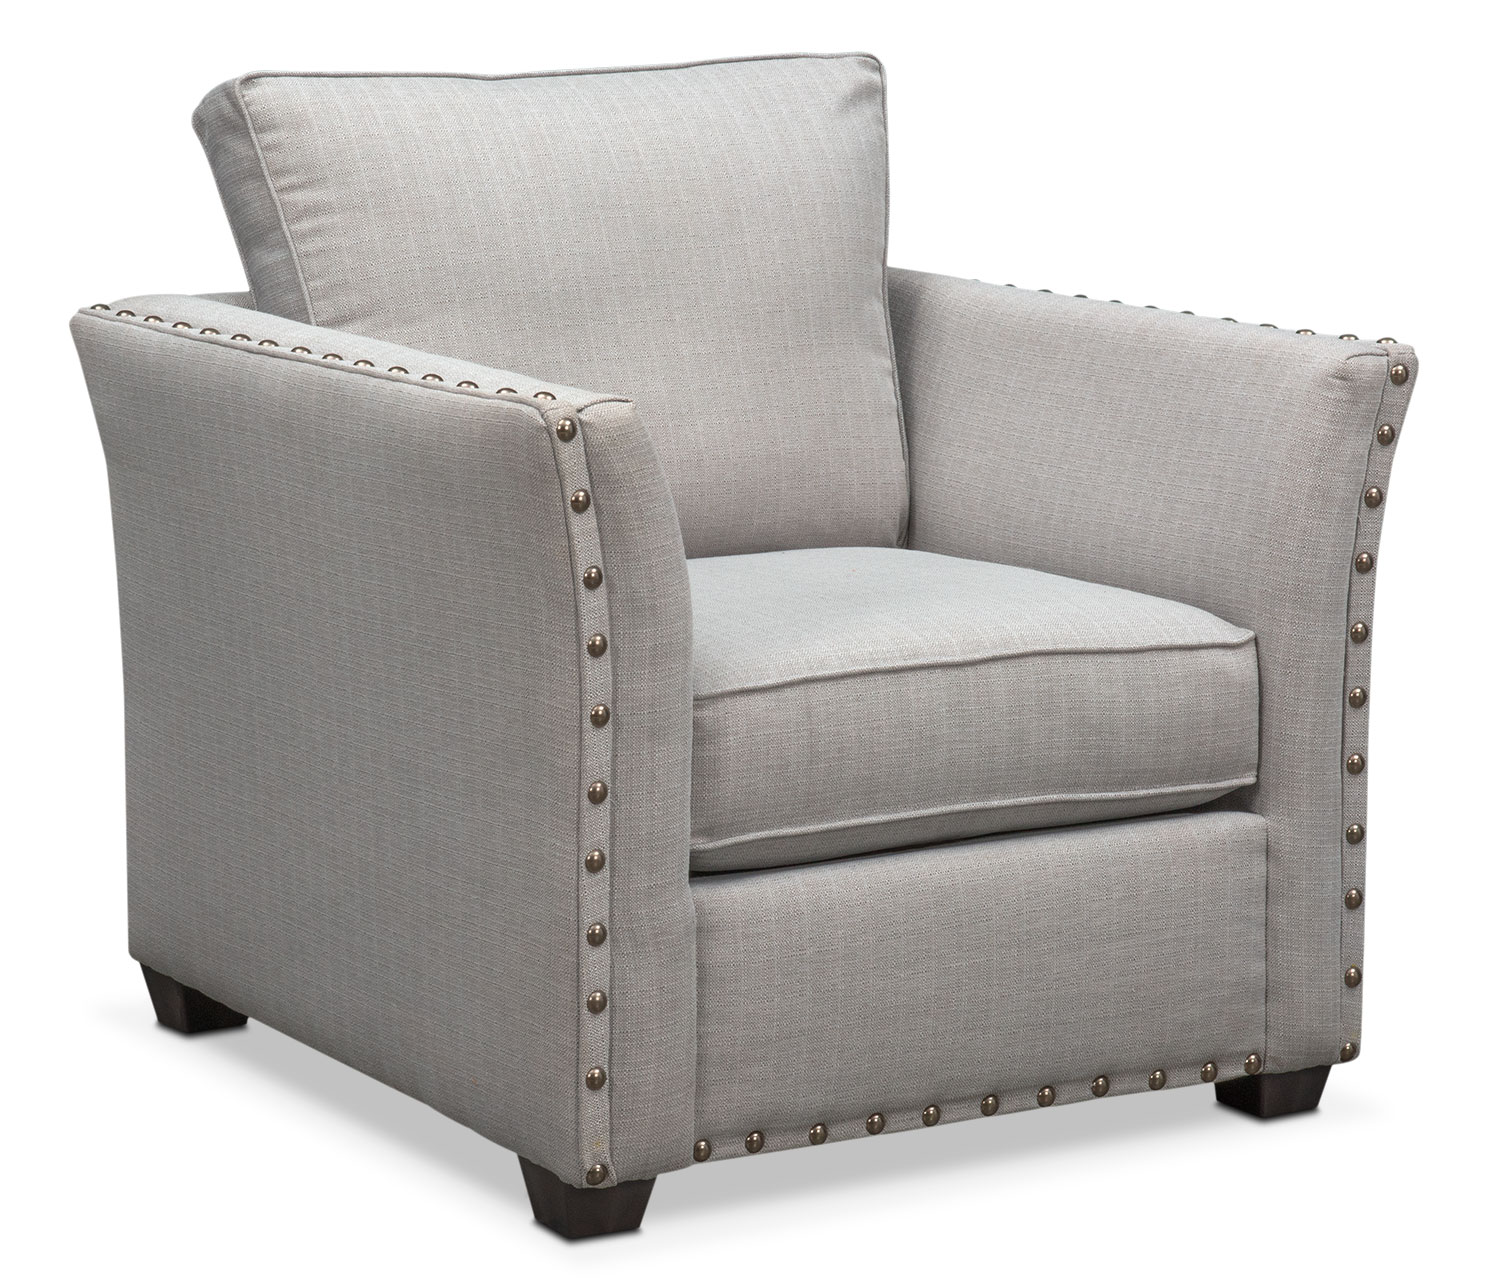 Living Room Furniture - Mckenna Chair - Pewter